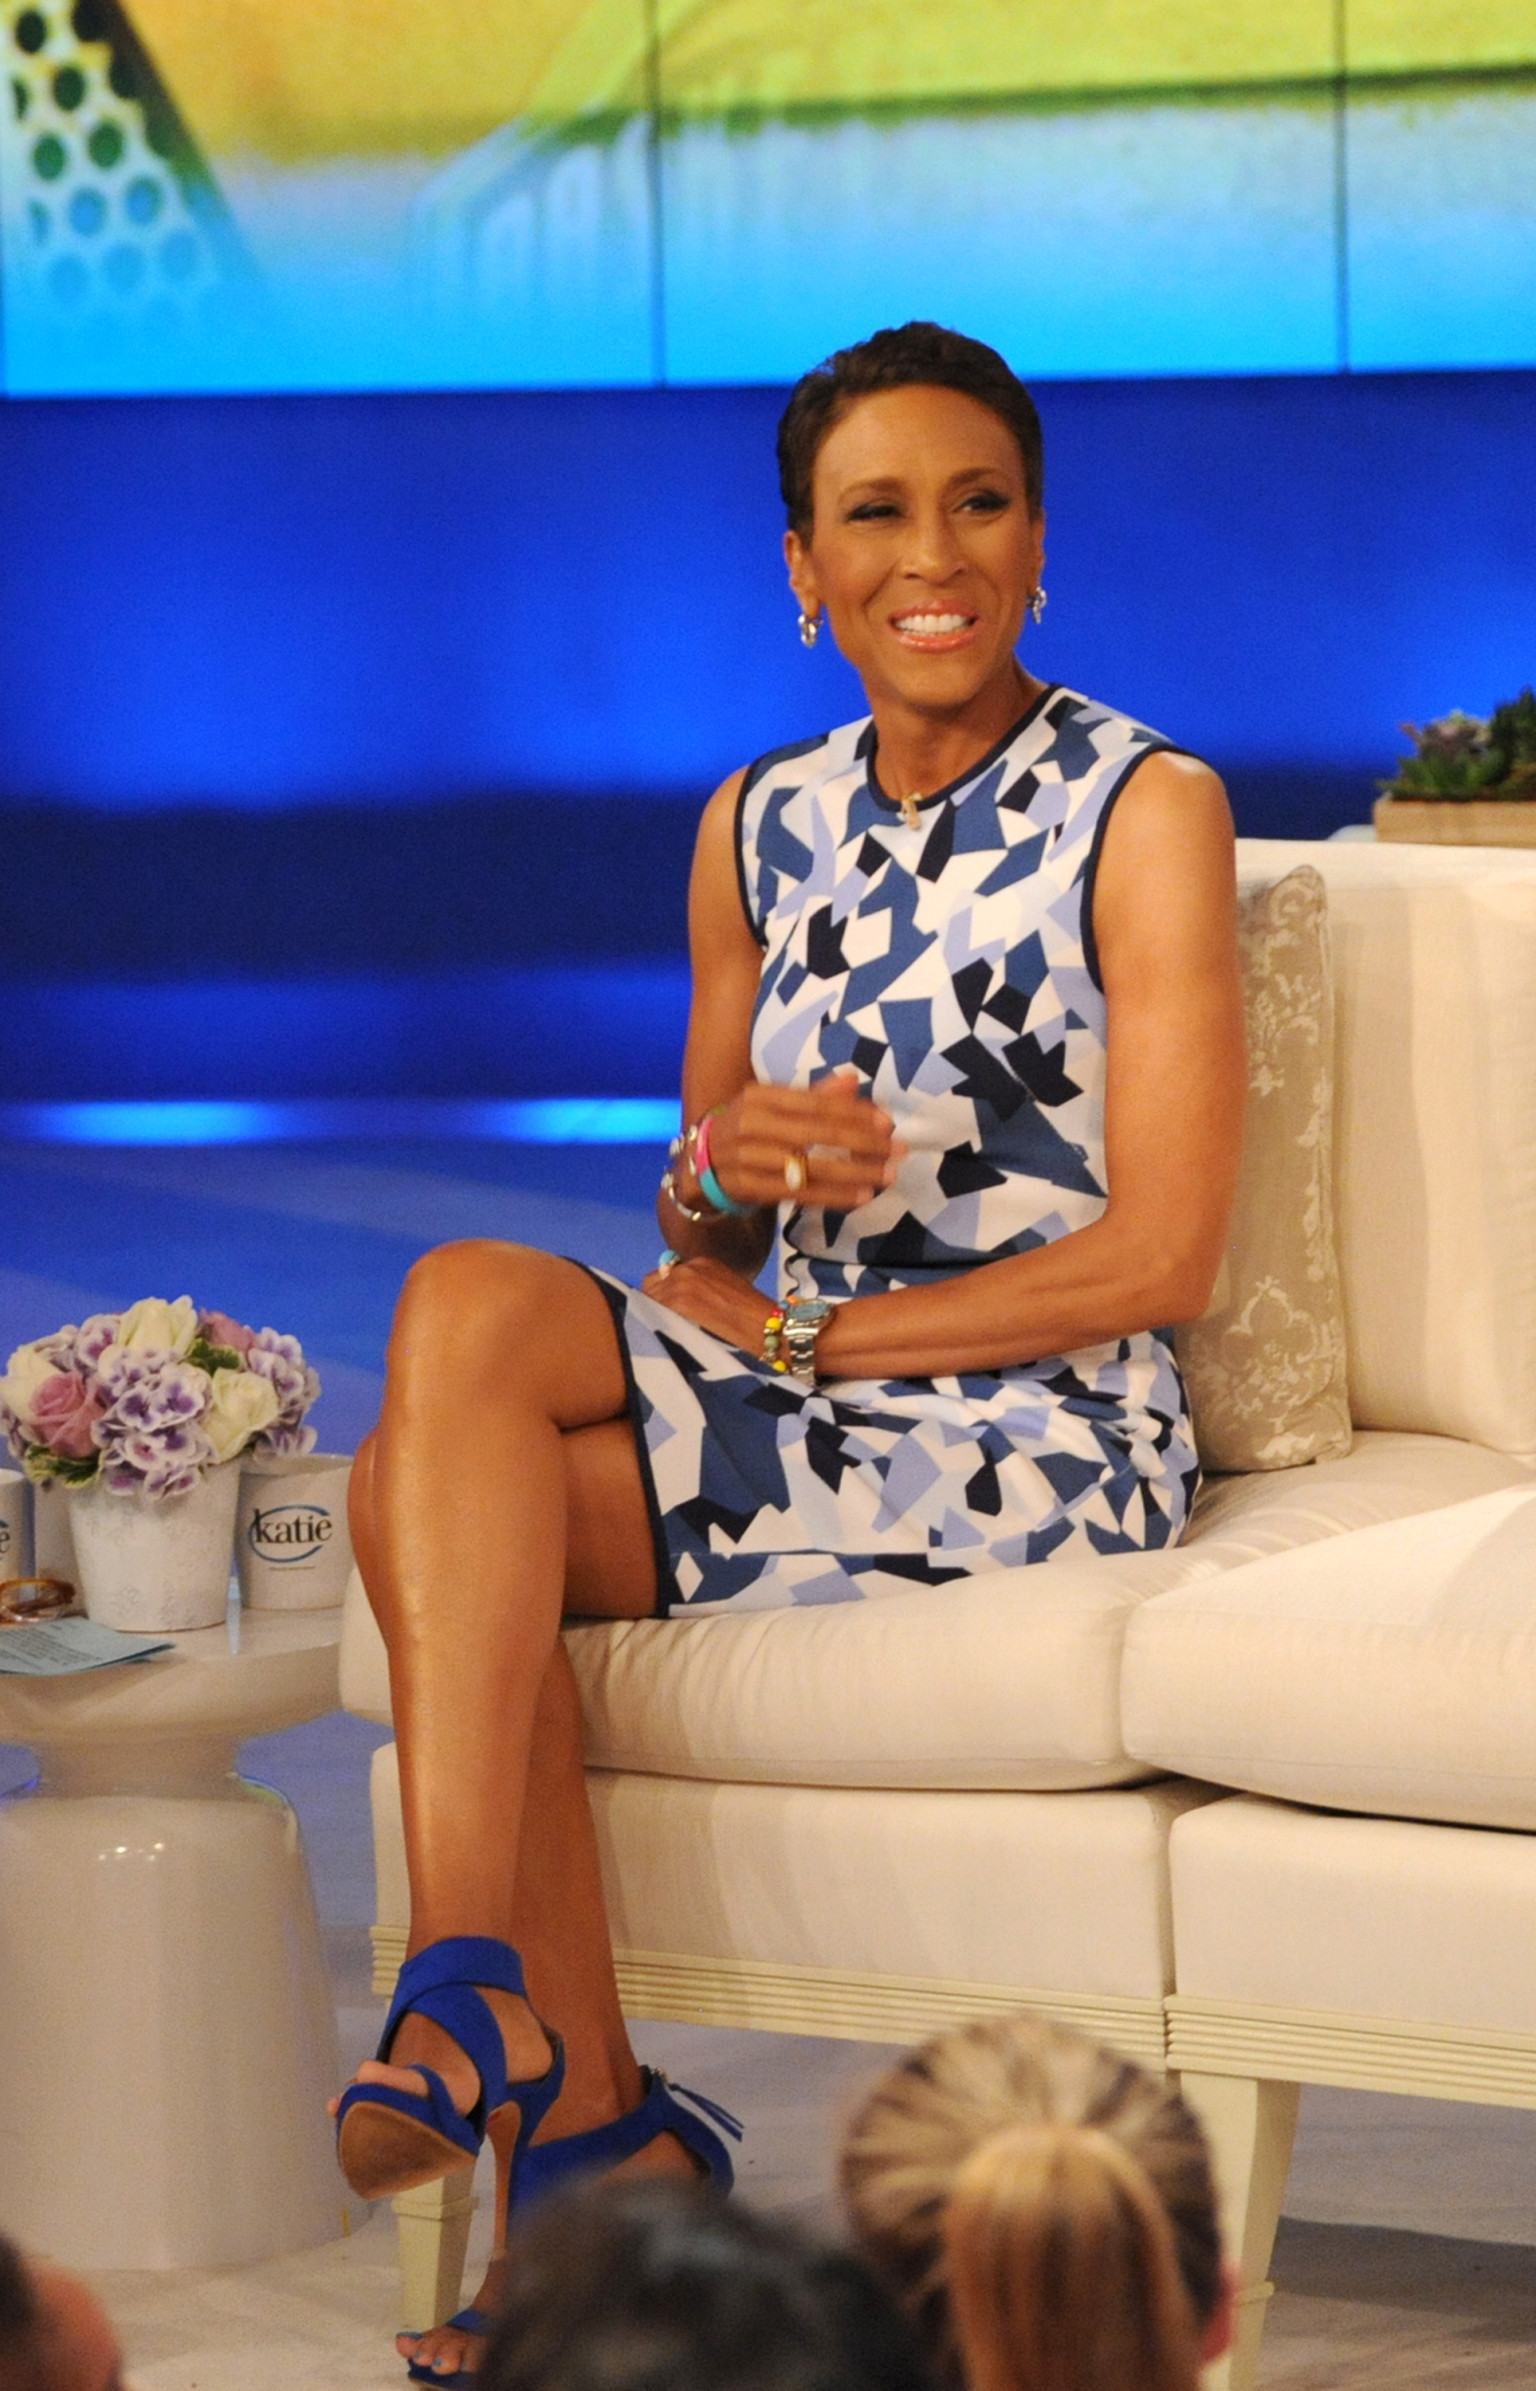 Good Morning America Home Invasion Interview : Robin roberts to return full time gma following labor